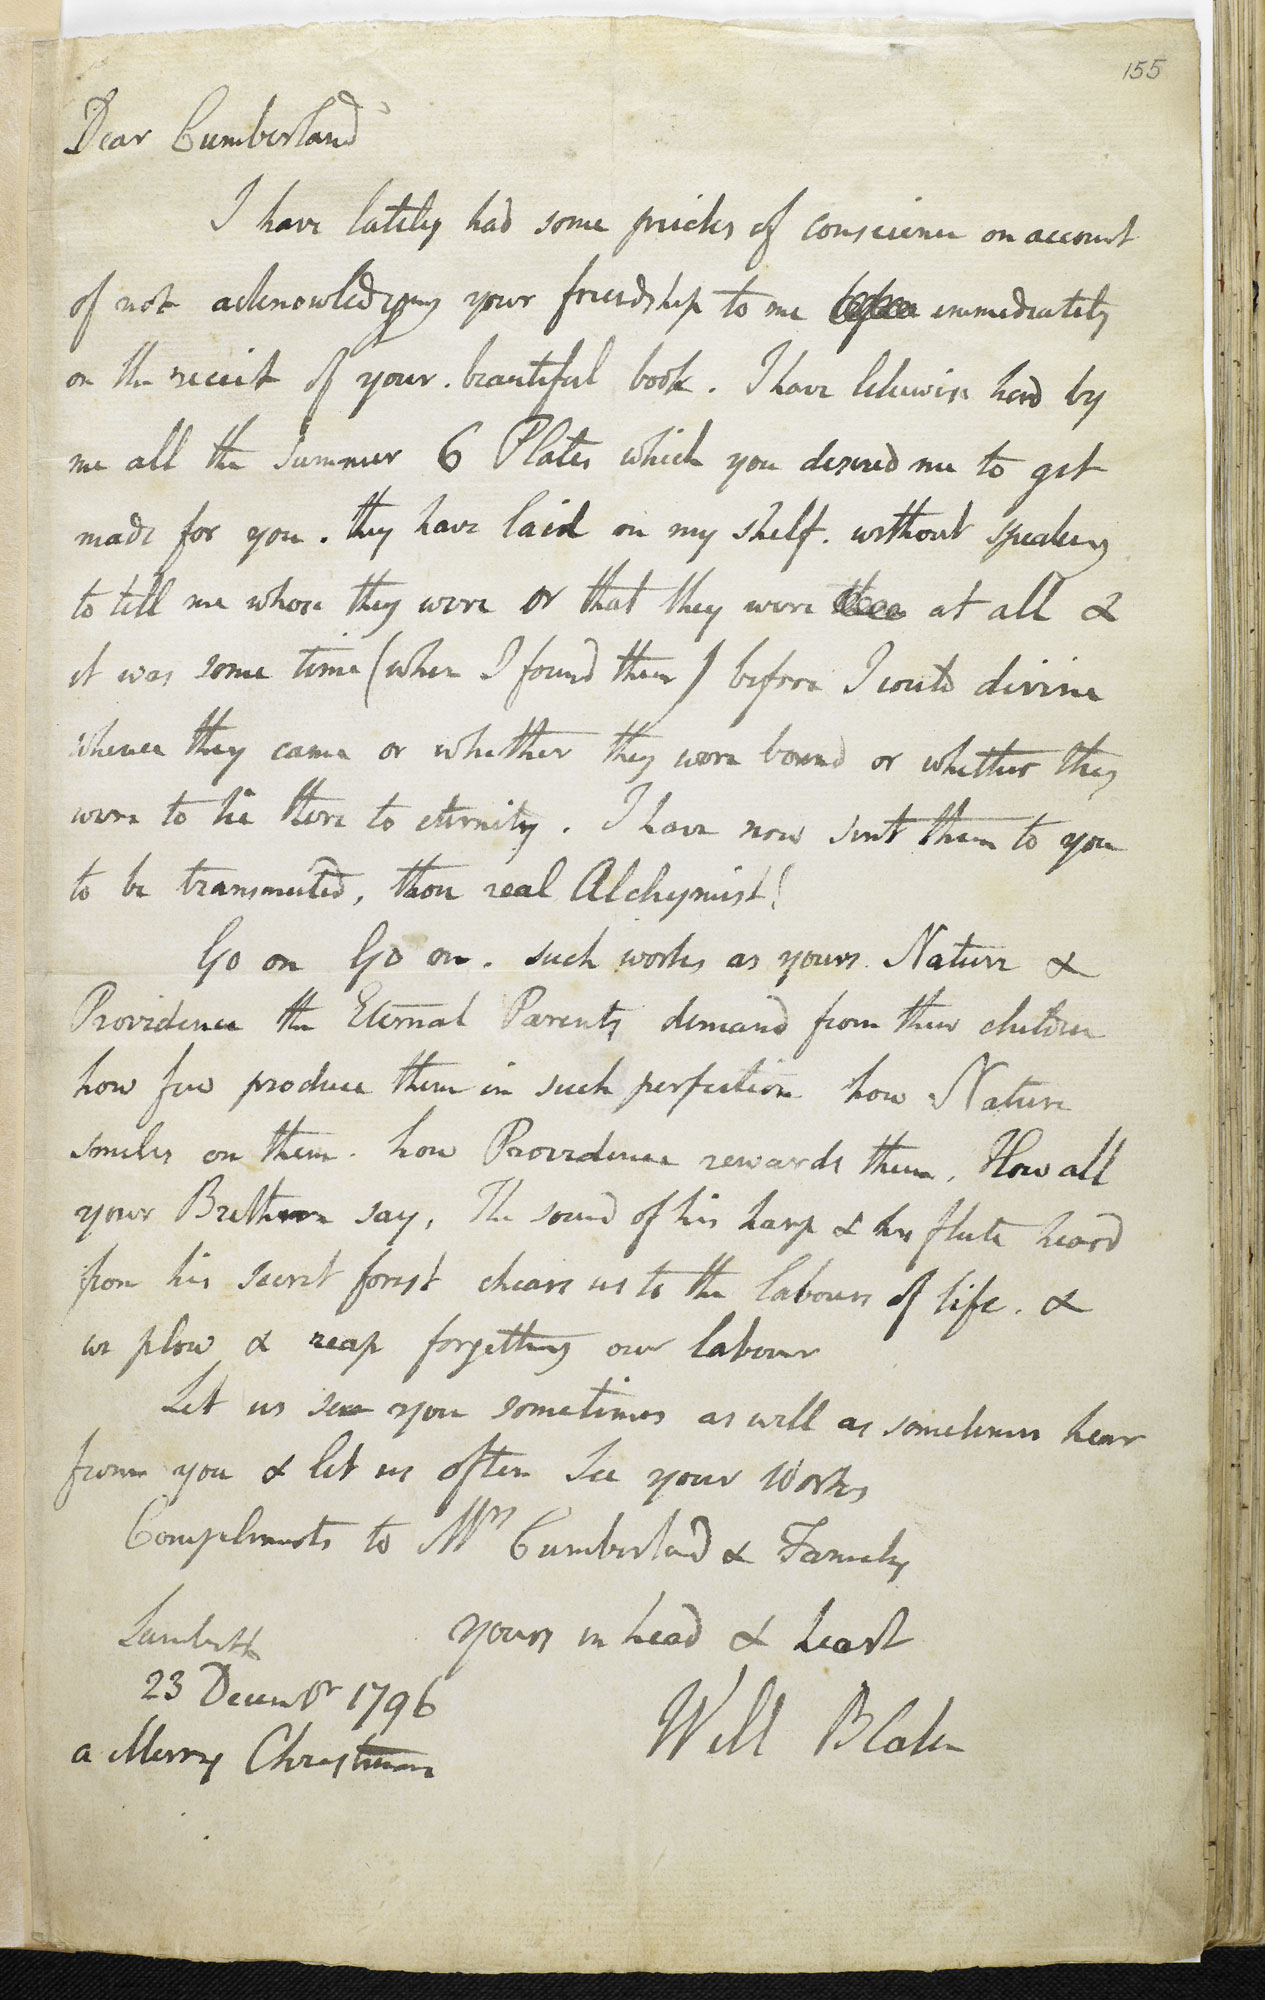 Letter from William Blake to George Cumberland, 23 December 1796 [folio: 155r]